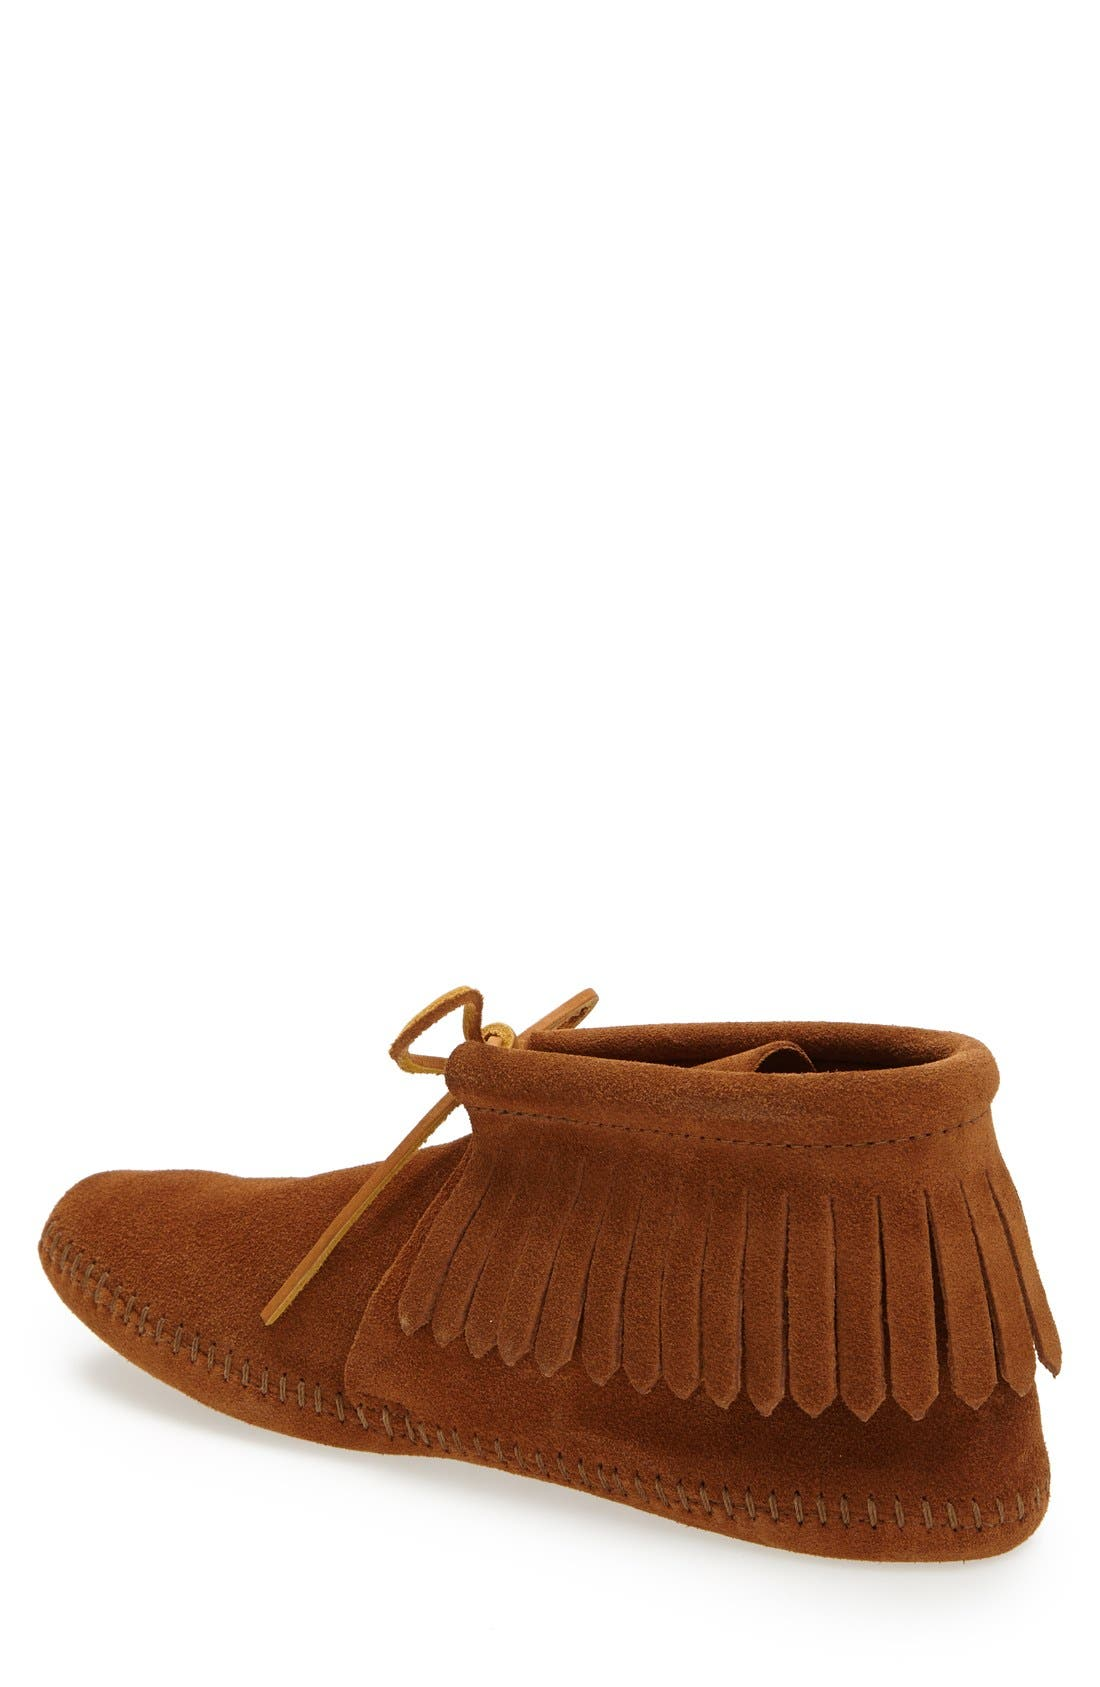 Fringe Boot,                             Alternate thumbnail 2, color,                             BROWN